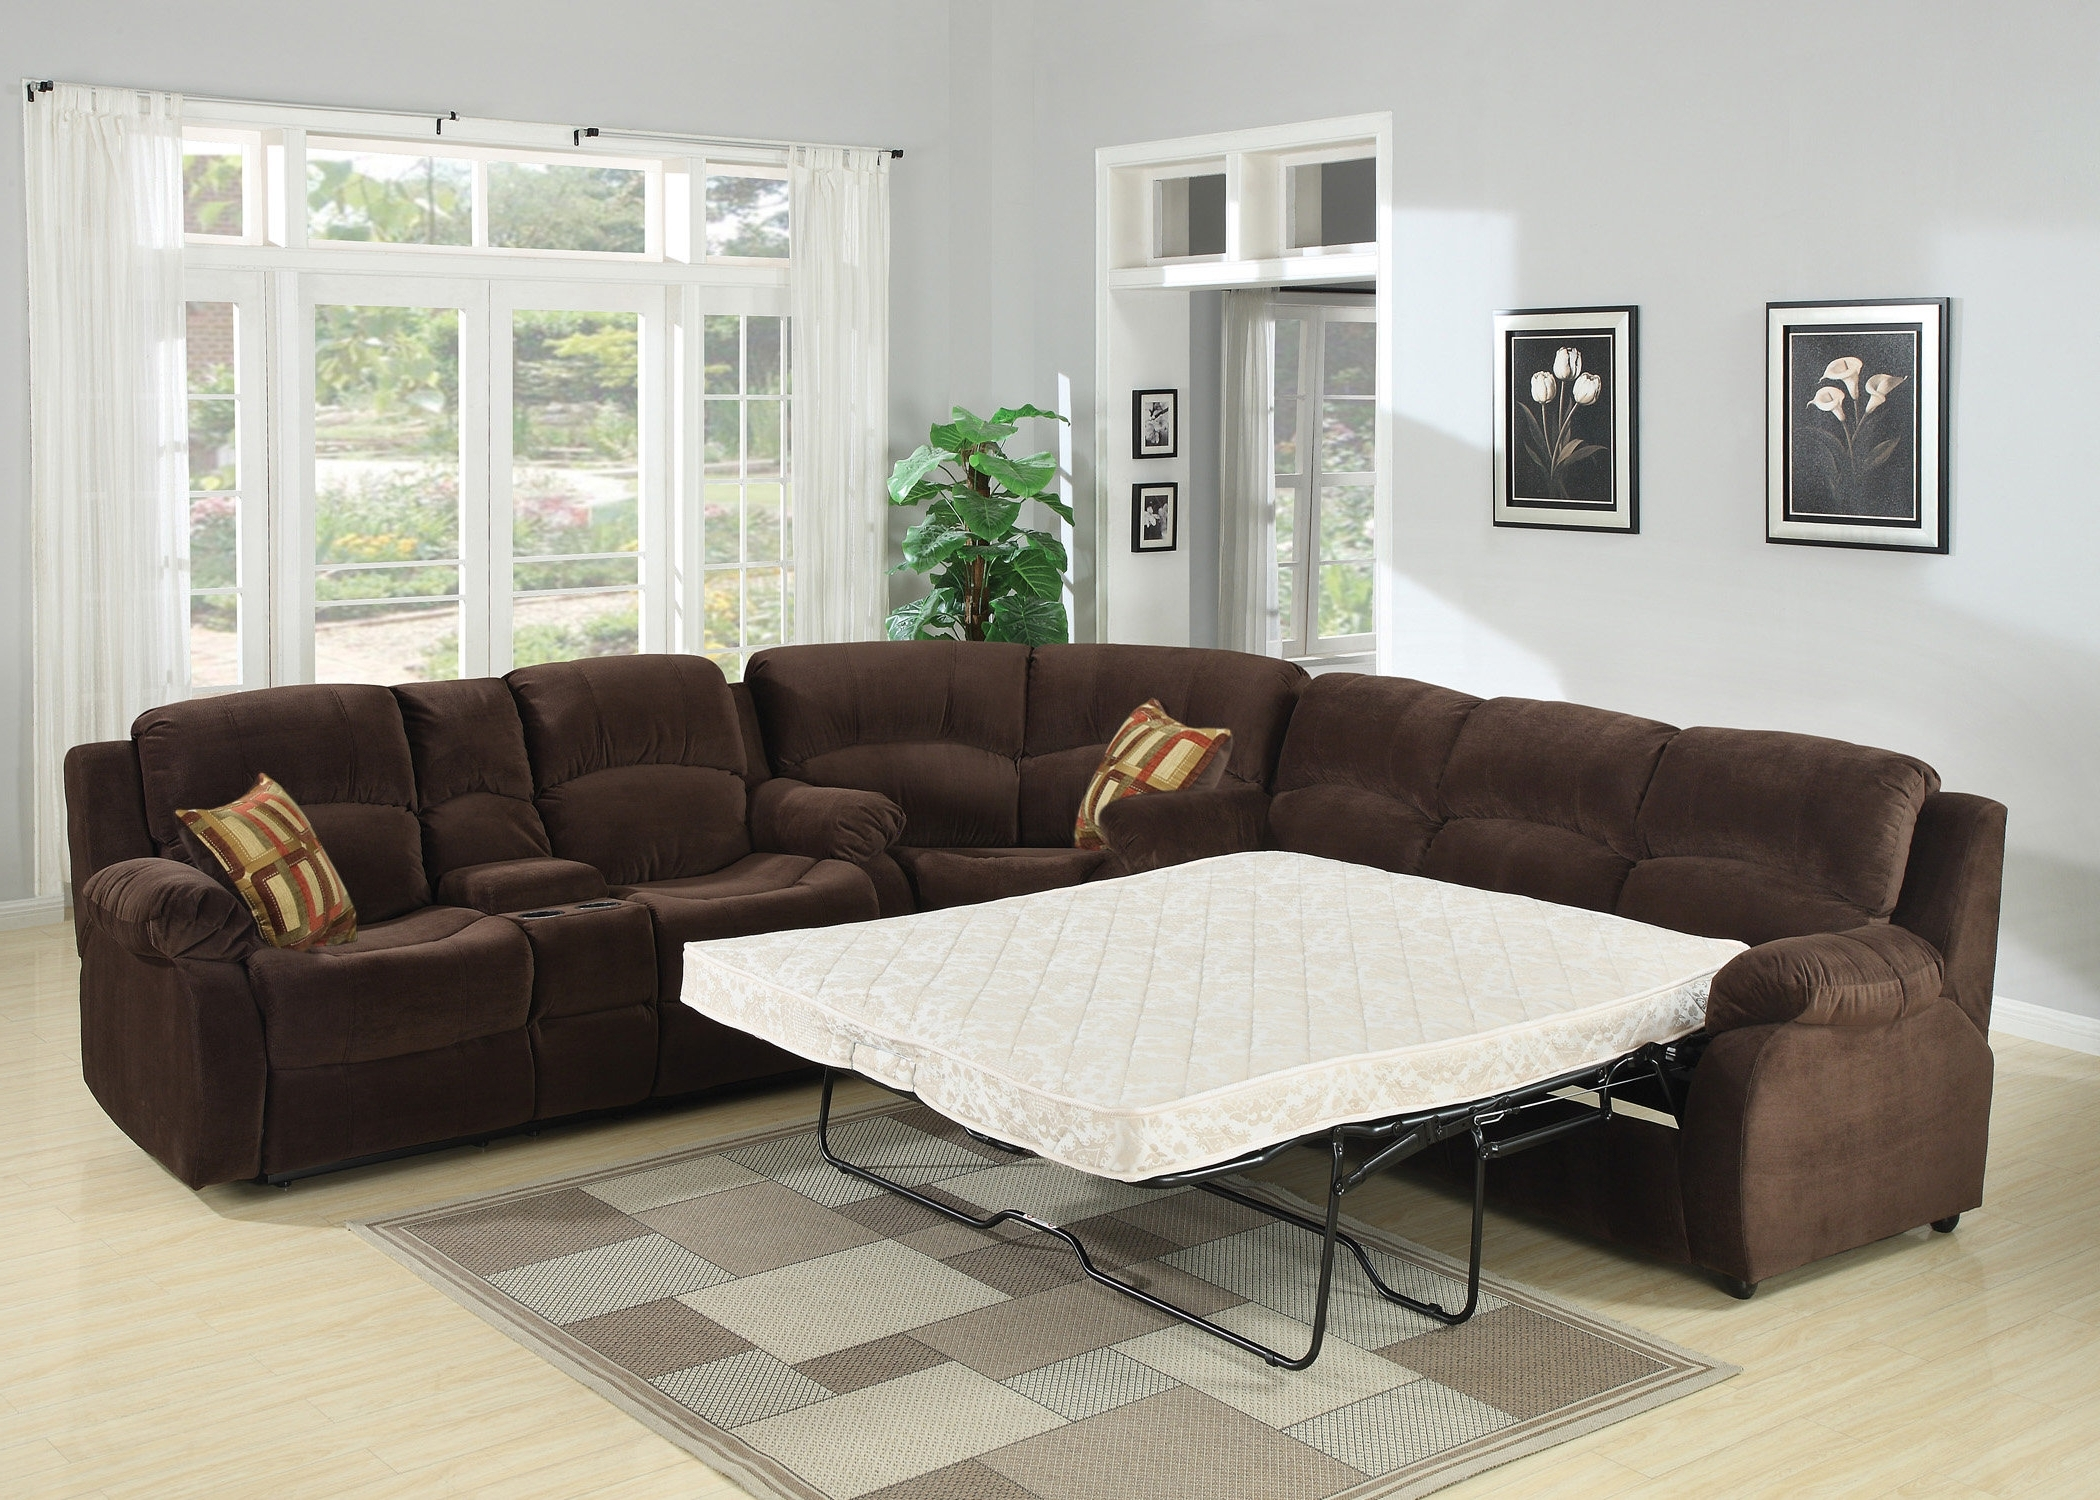 Adjustable Sectional Sofas With Queen Bed For Most Recent Sleeper Sectional Sofas You'll Love (View 2 of 15)